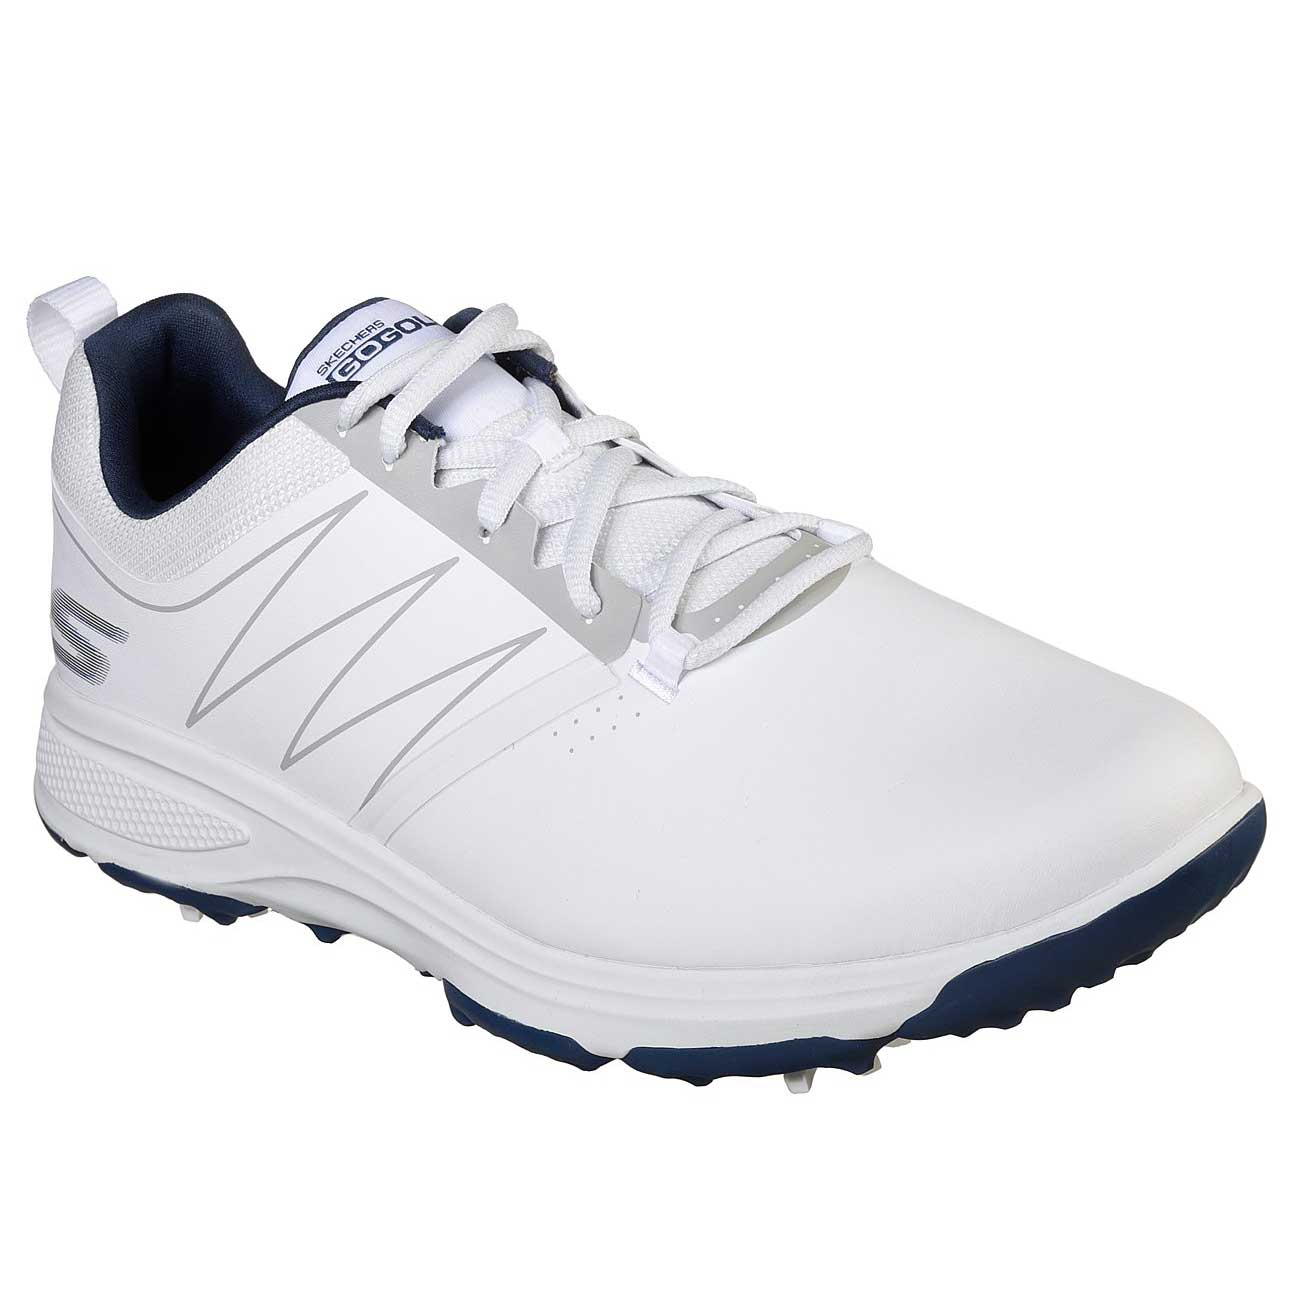 Skechers Men's Go Golf Torque White/Navy Golf Shoe